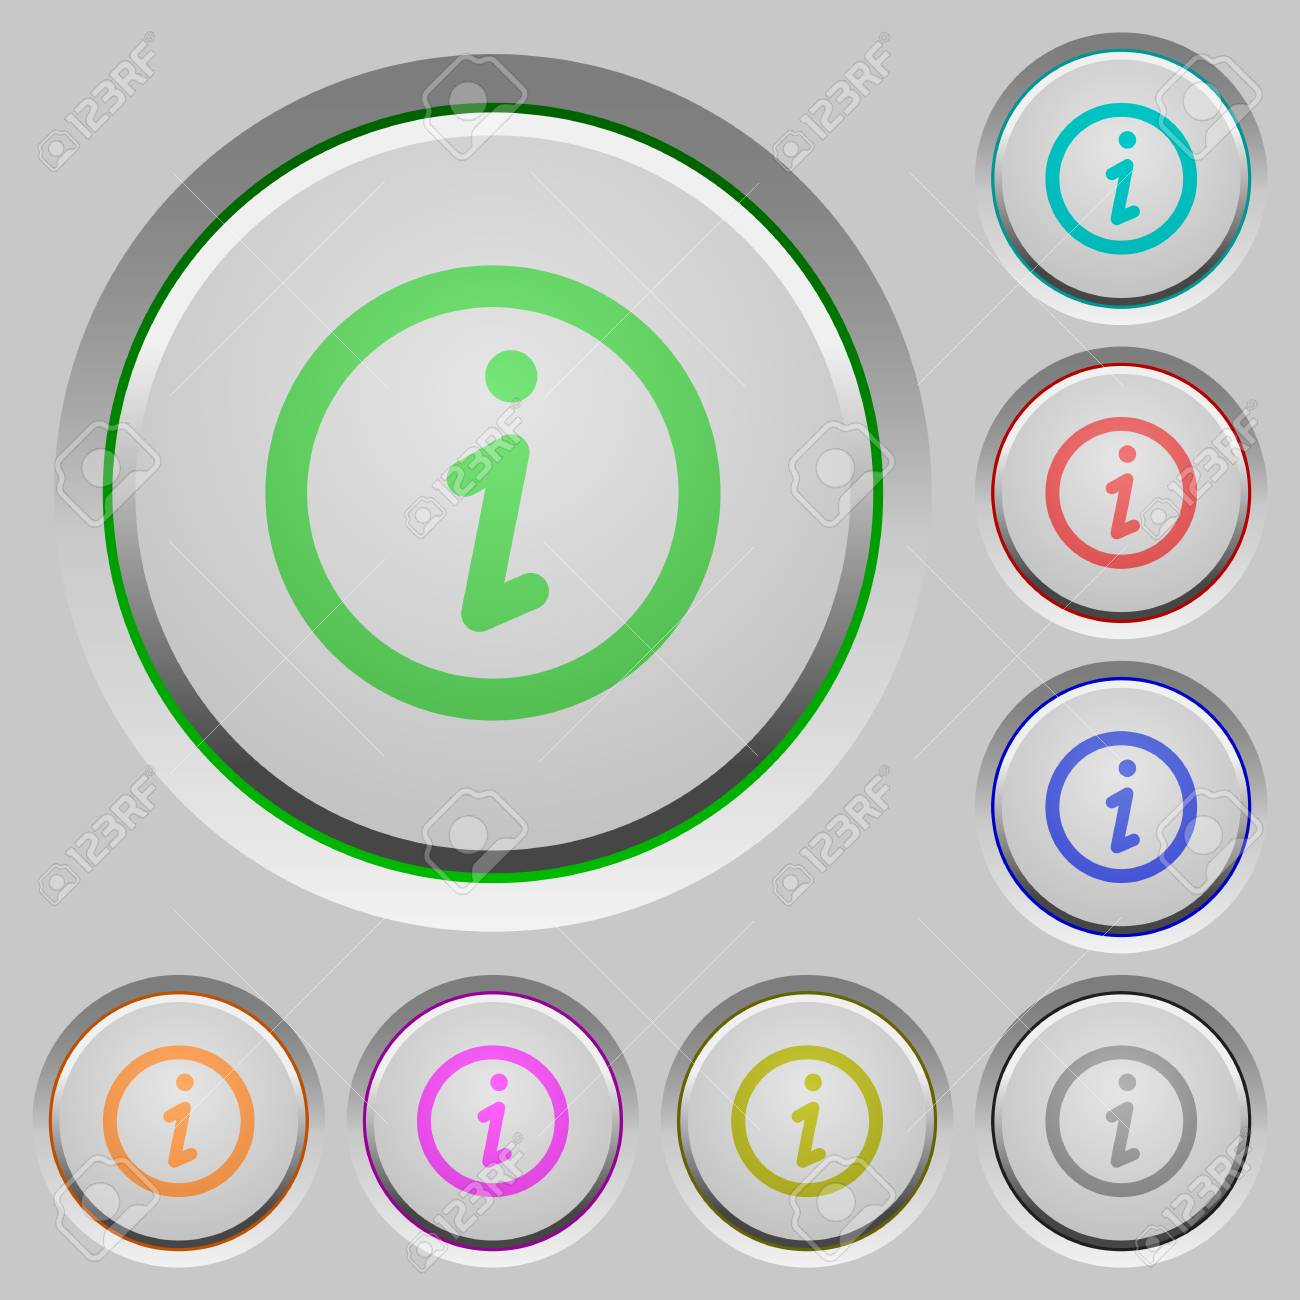 Set of Information sunk push buttons. Well-organized layer, color swatch and graphic style structure. Easy to recolor. - 48772172